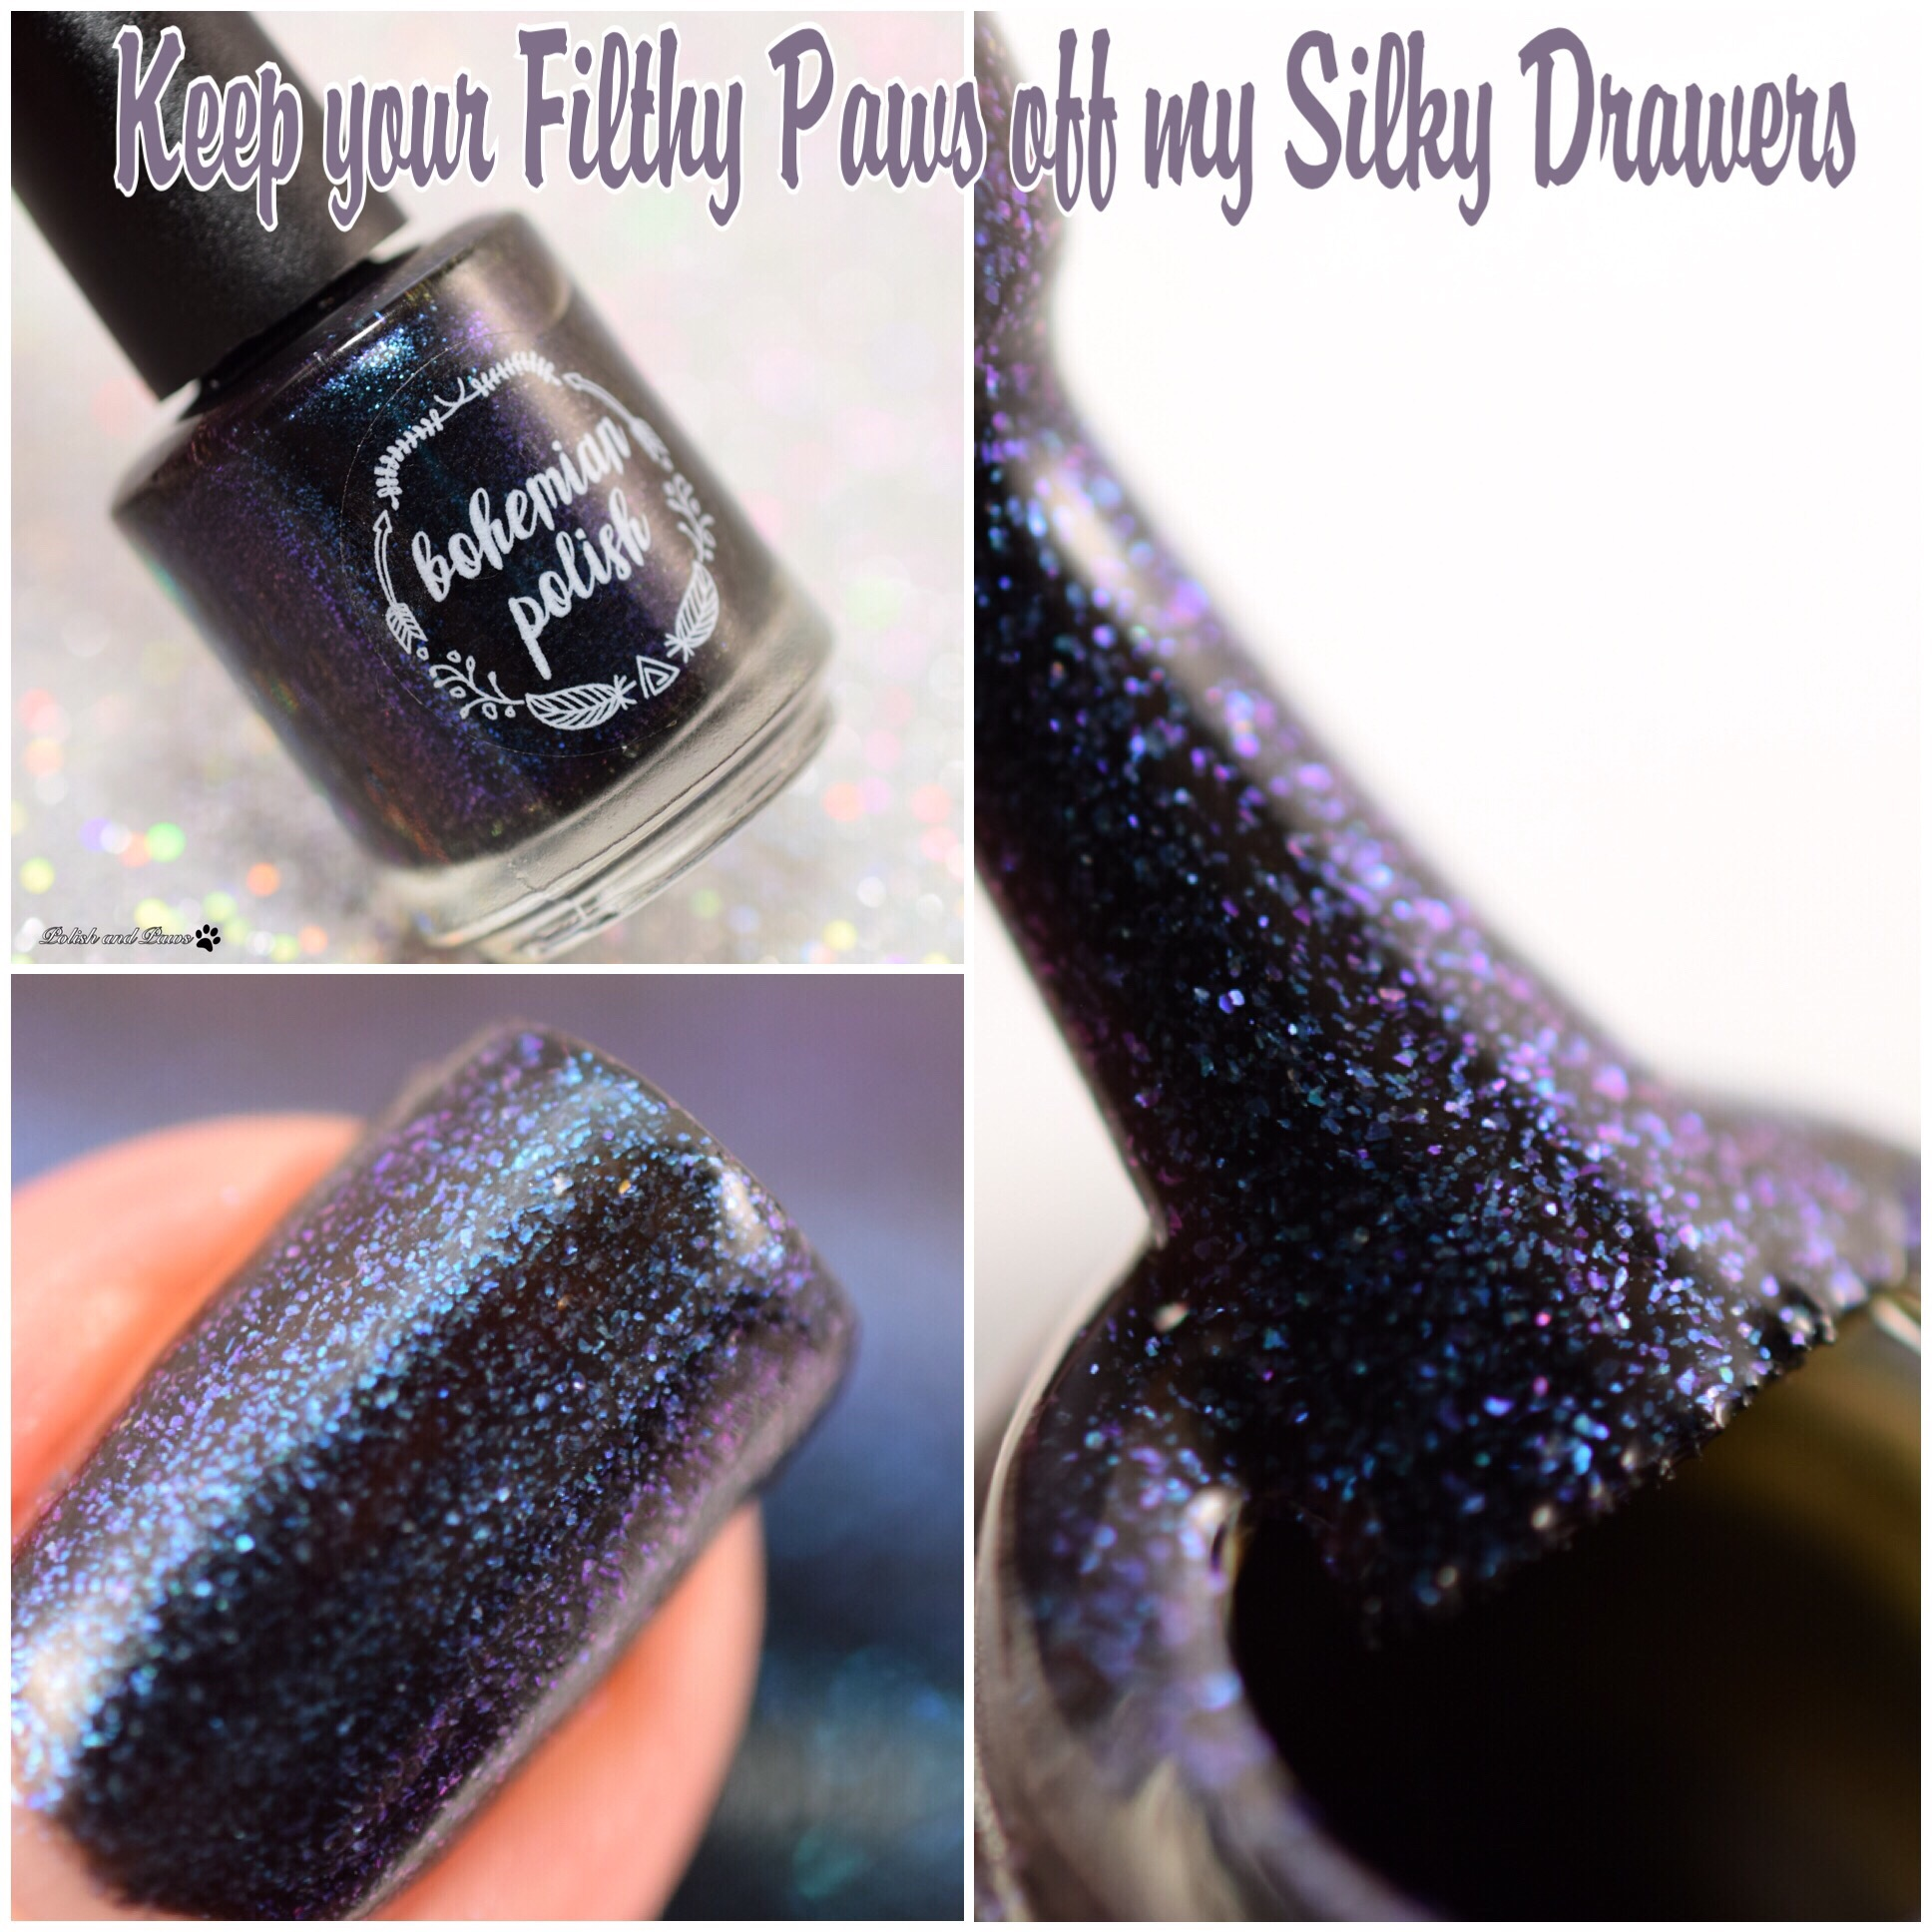 Bohemian Polish Keep your Filthy Paws off my Silky Drawers